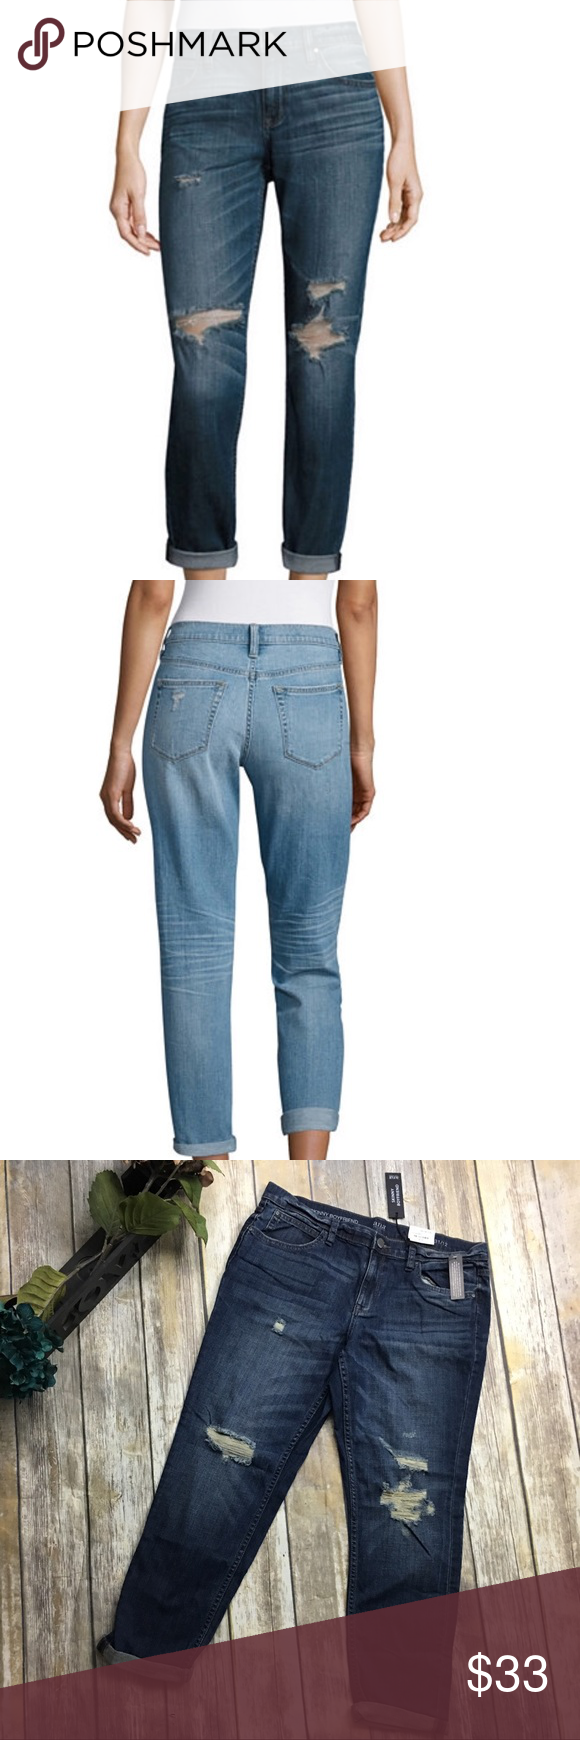 🎈 A.n.a Skinny Boyfriend Cropped Jeans Skinny Boyfriend distressed denim cropped pants. Size 31/12 with 26 inch inseam. Rolled pant bottoms that can be unrolled. New with tags. a.n.a Jeans Ankle & Cropped